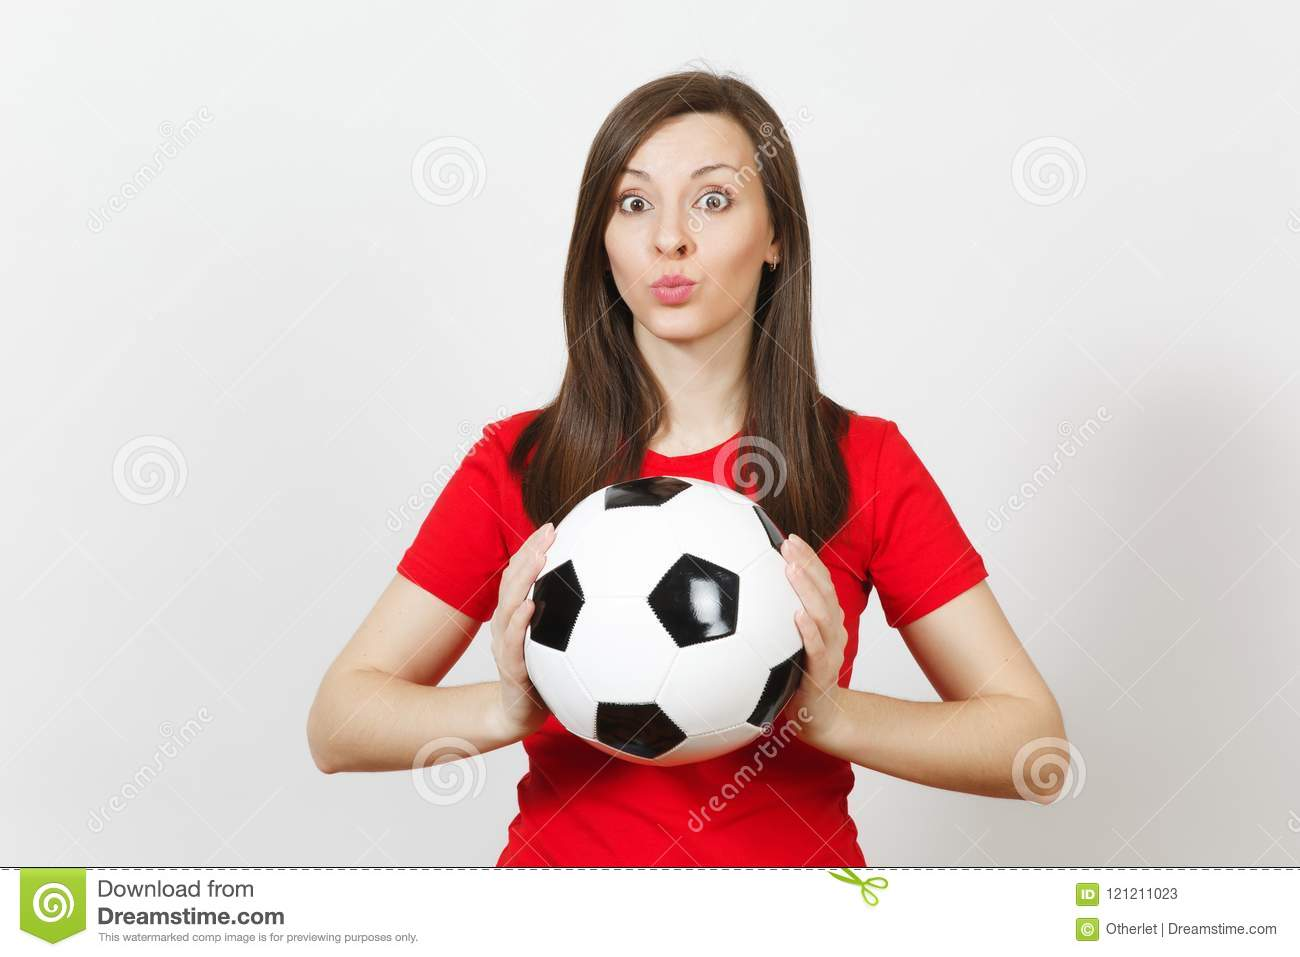 Beautiful European young people, football fan or player on white background. Sport, play, health, healthy lifestyle concept.